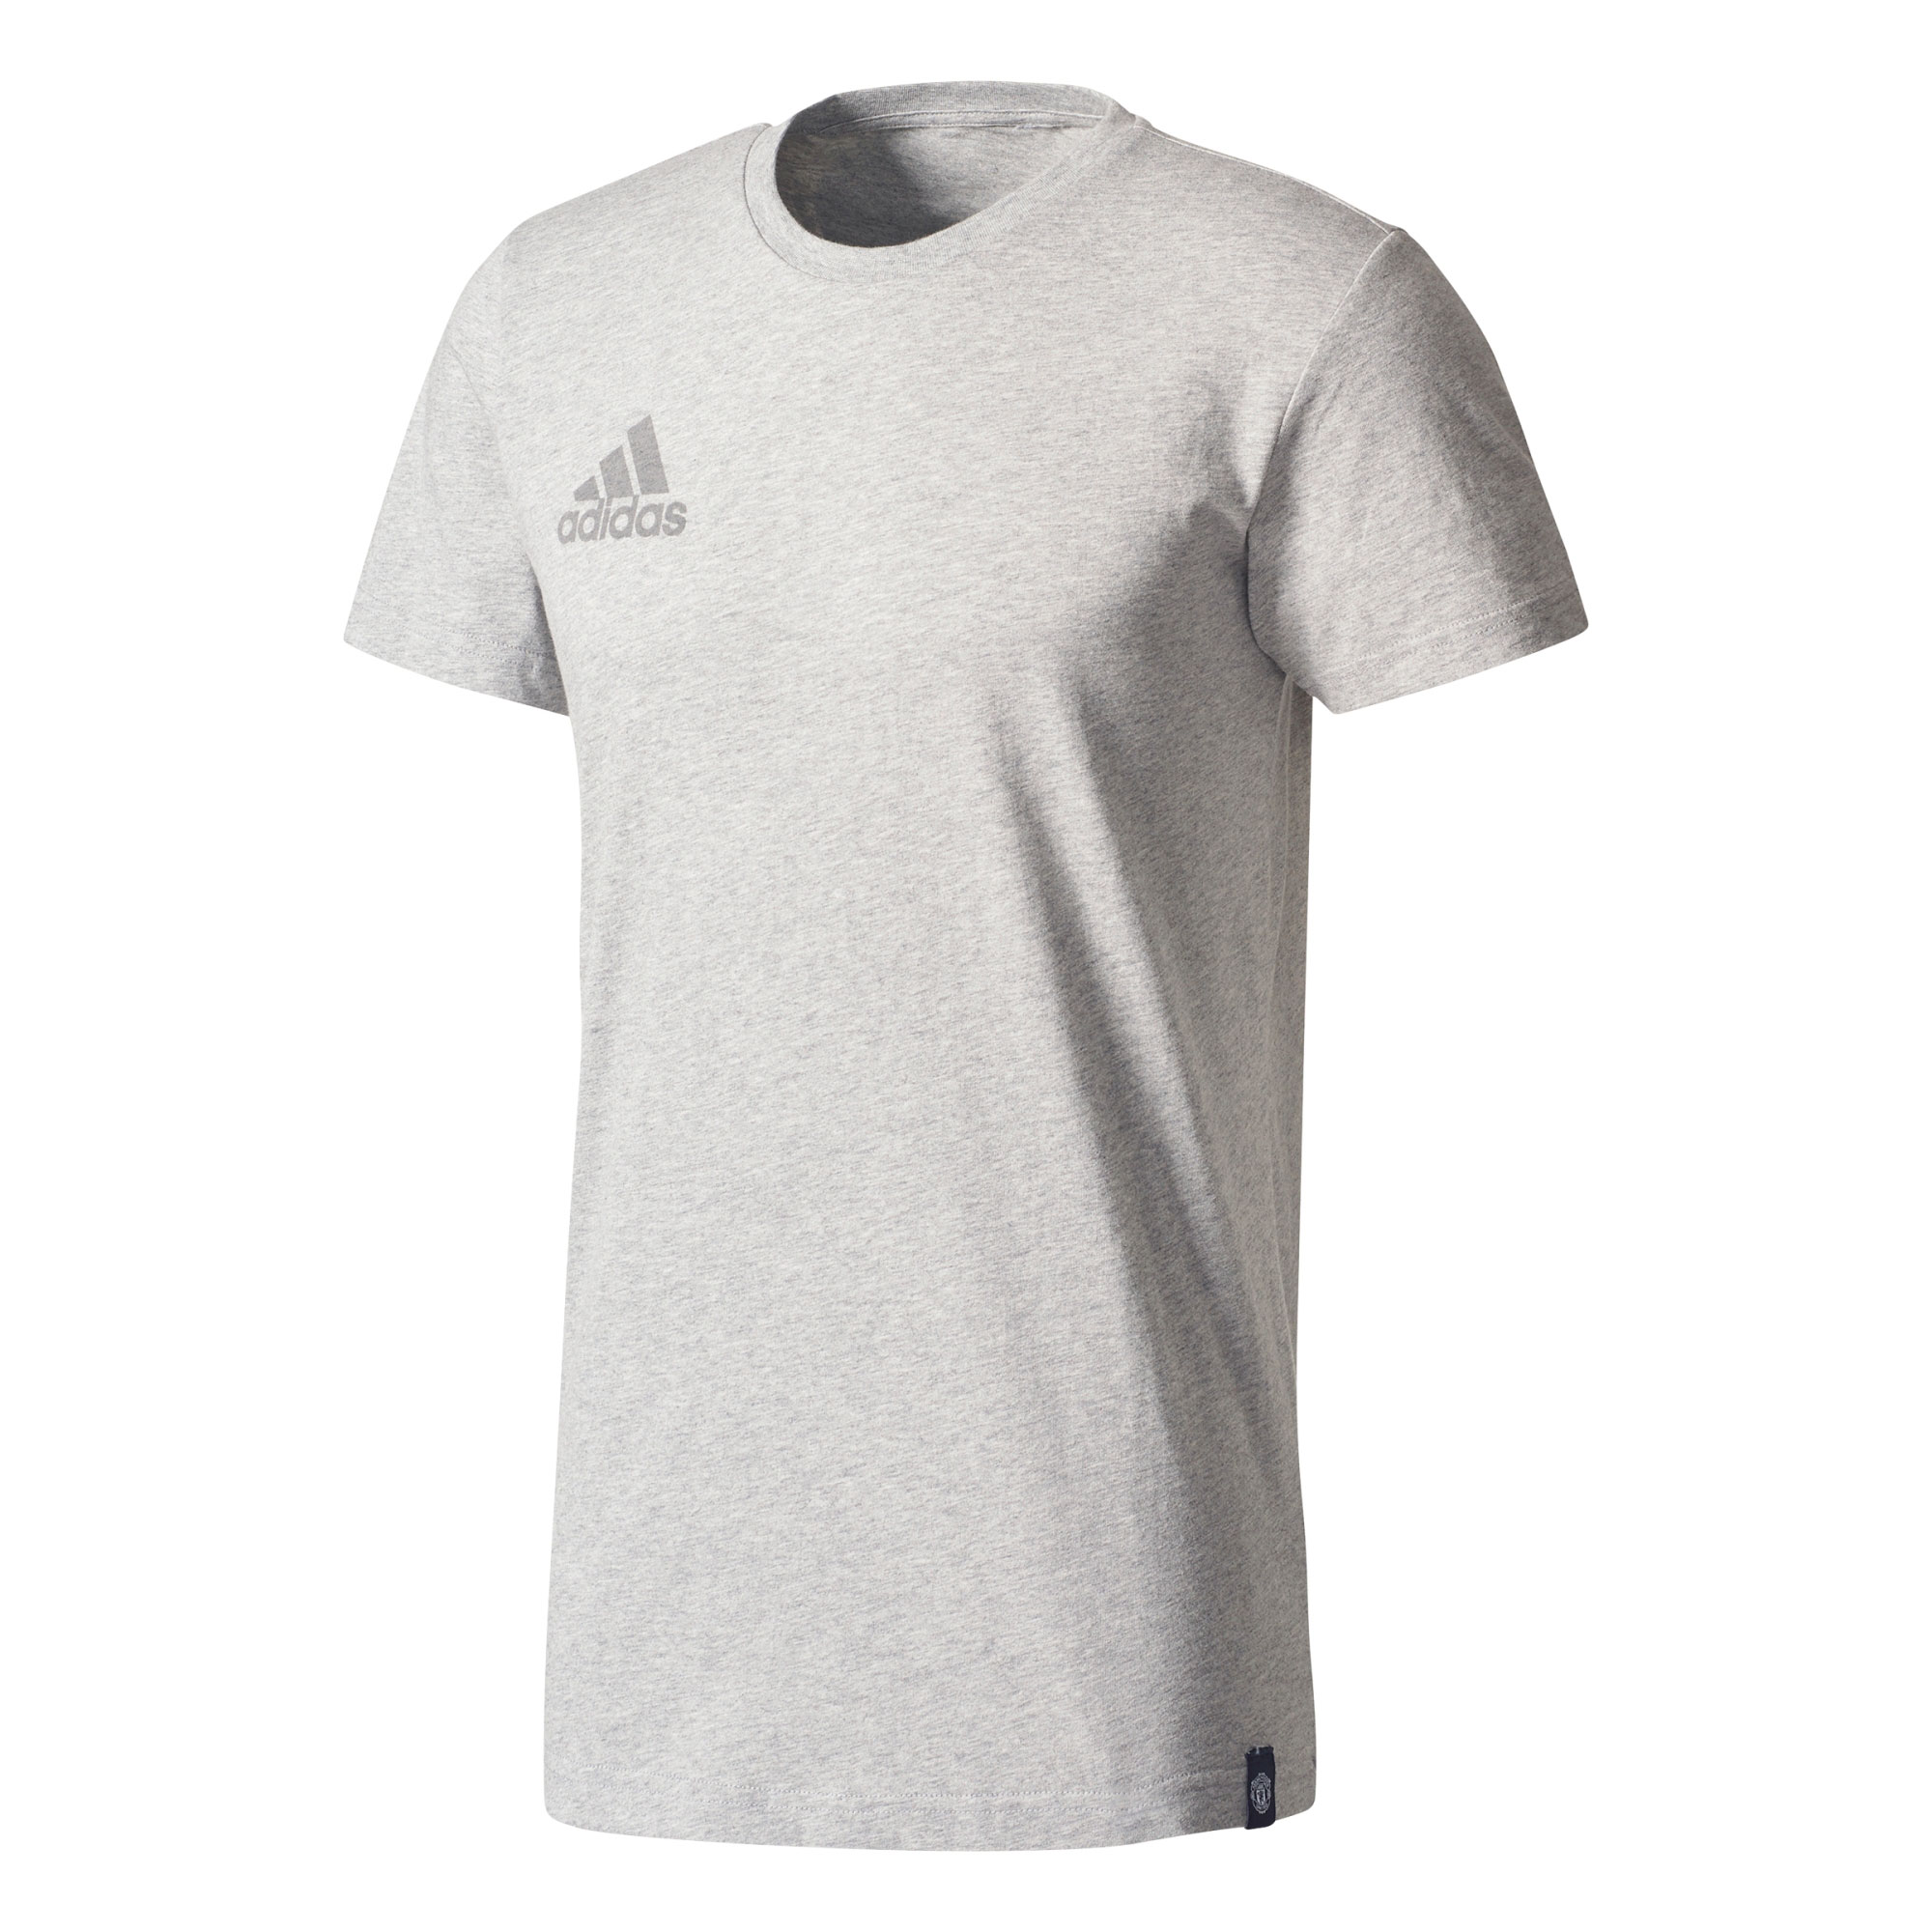 Manchester United T-Shirt - Grey